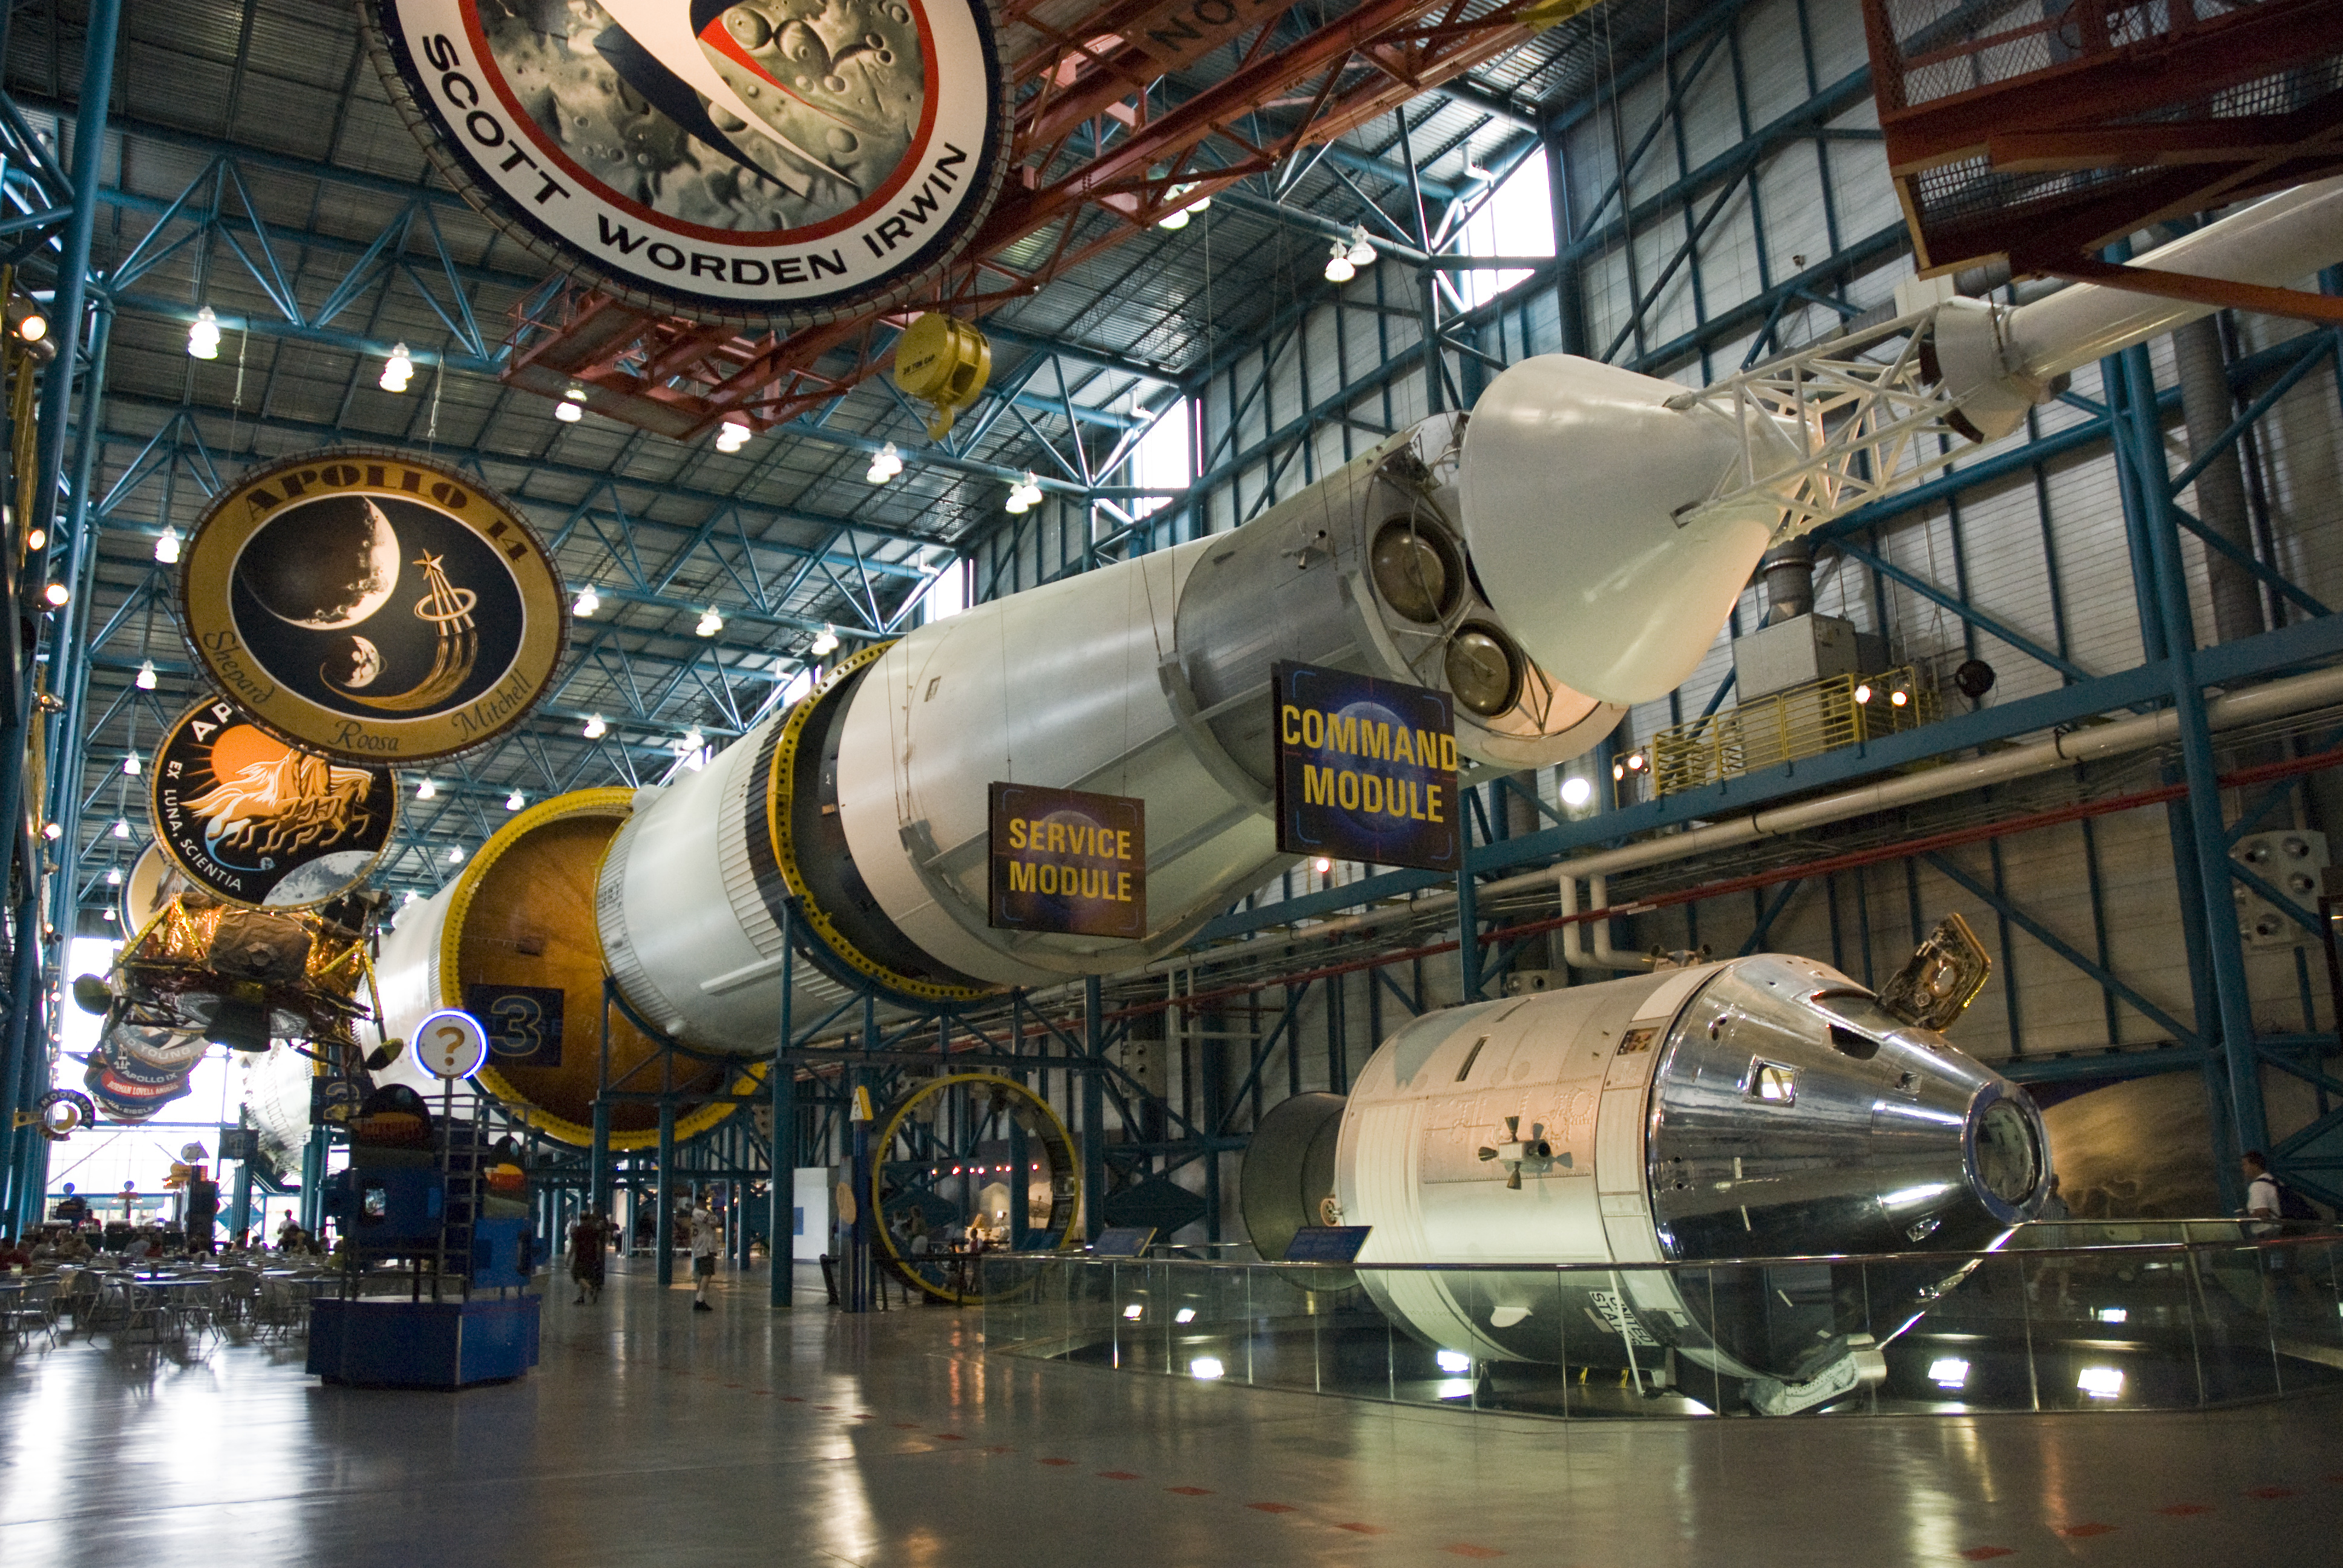 apollo 5 kennedy space center - photo #22